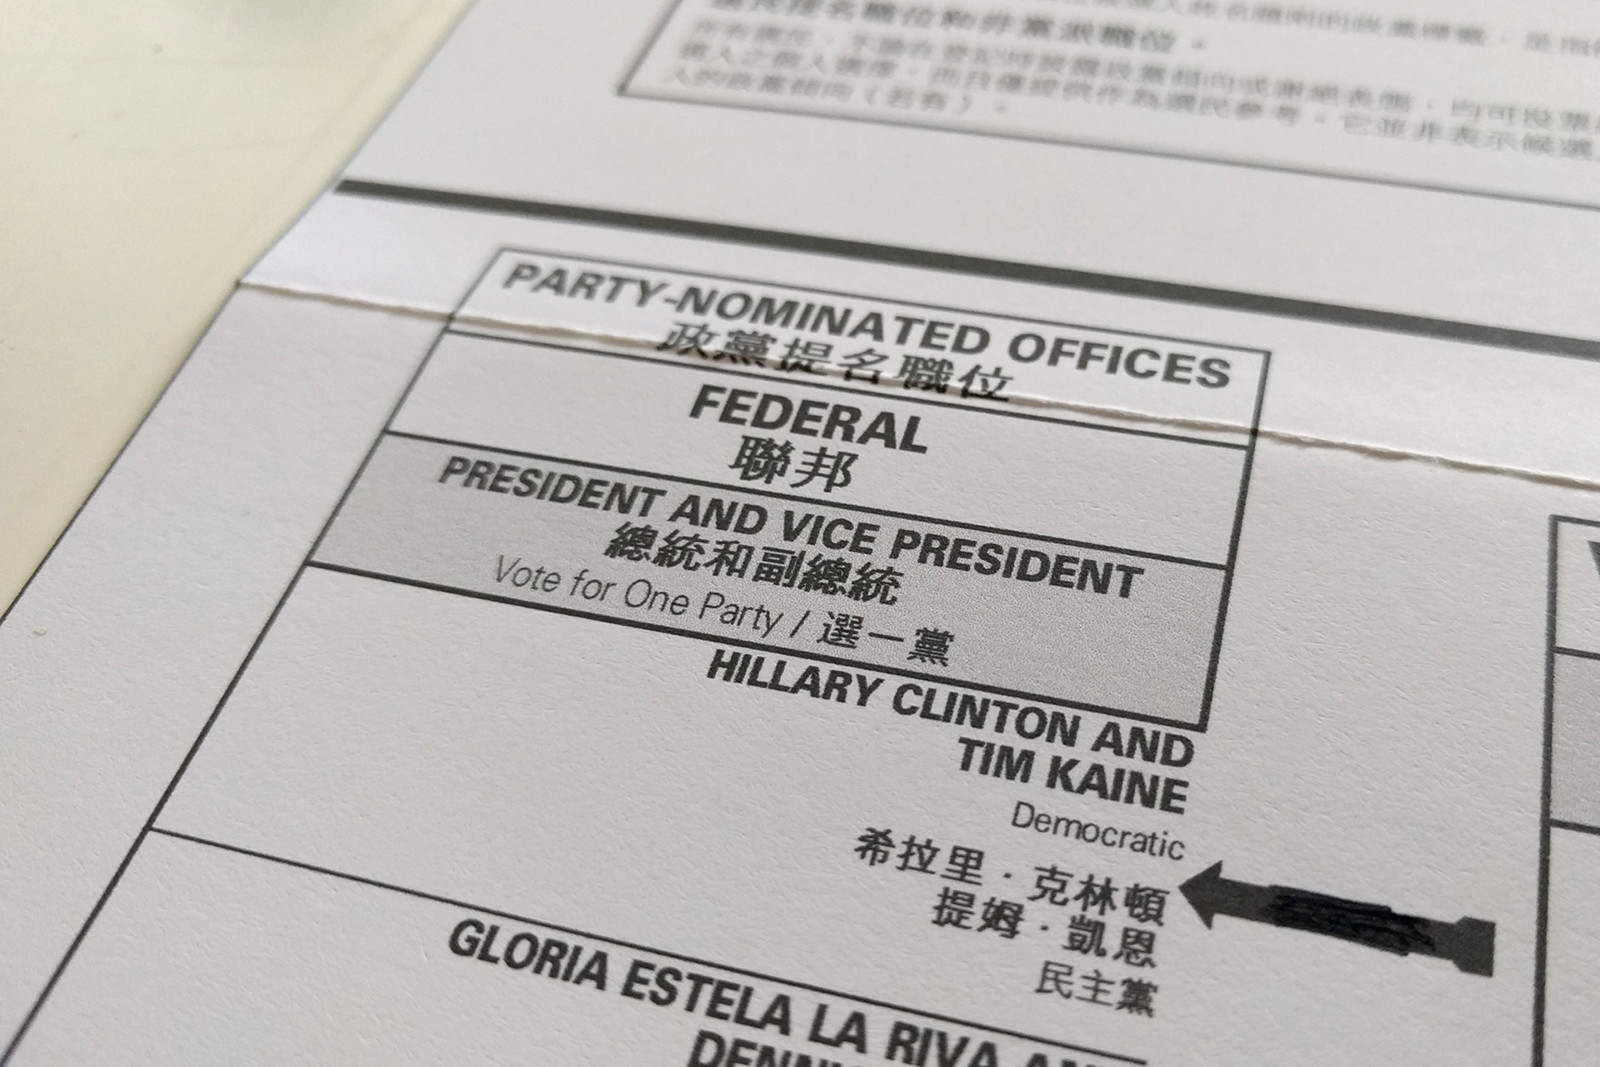 My 2016 vote for president: Hillary Clinton and Tim Kaine